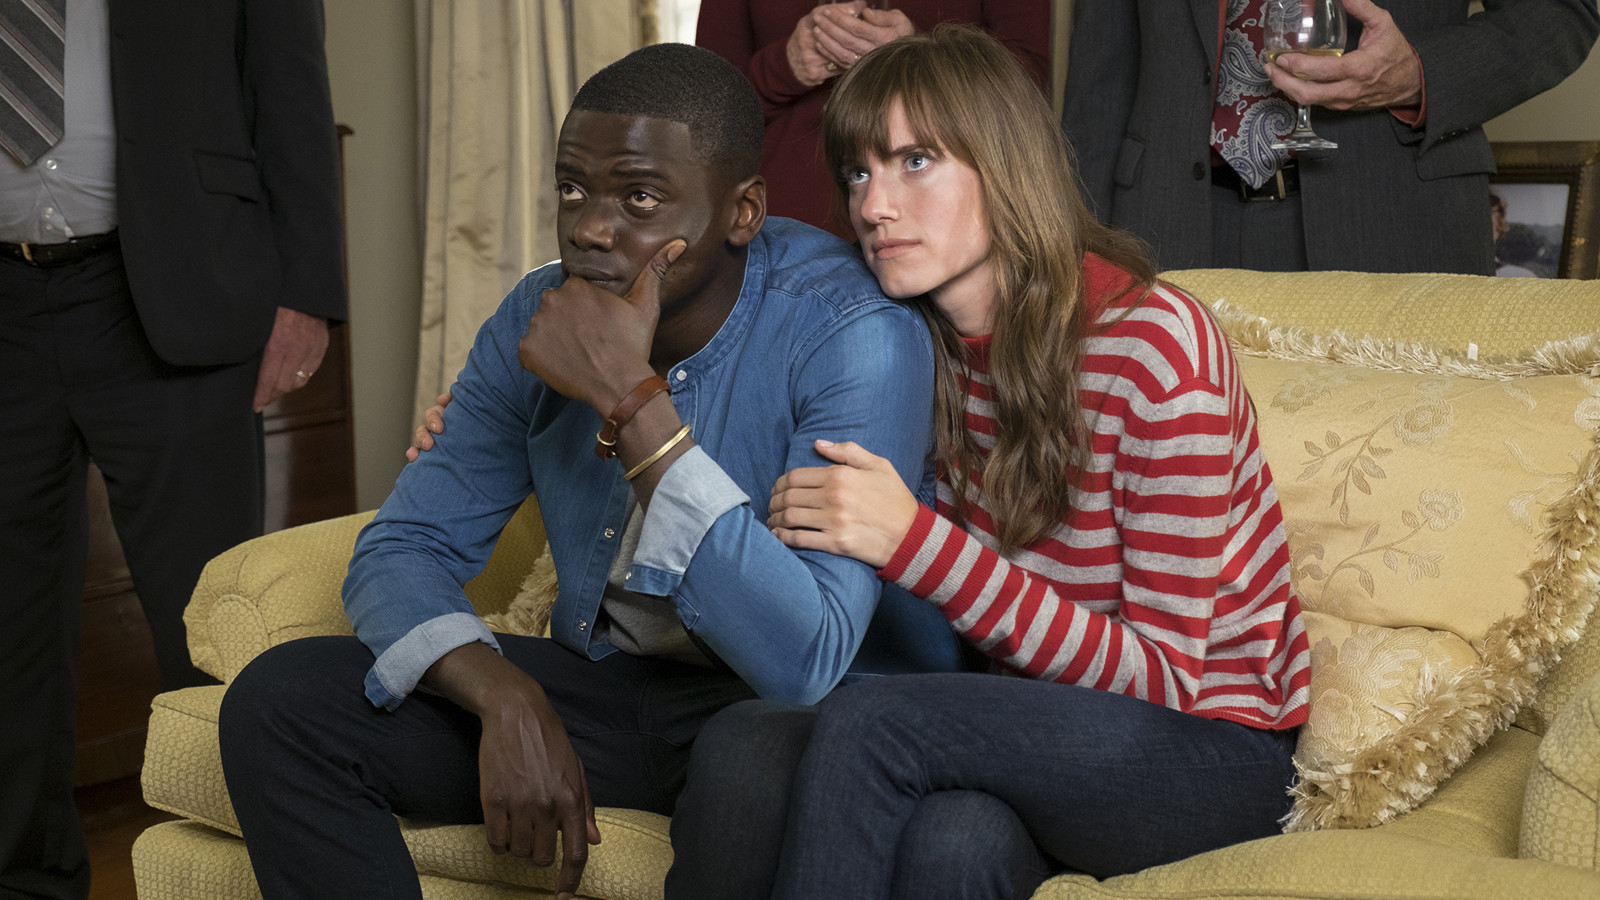 Jordan Peele's clever horror-satire 'Get Out' is an overdue Hollywood response to our racial anxiety